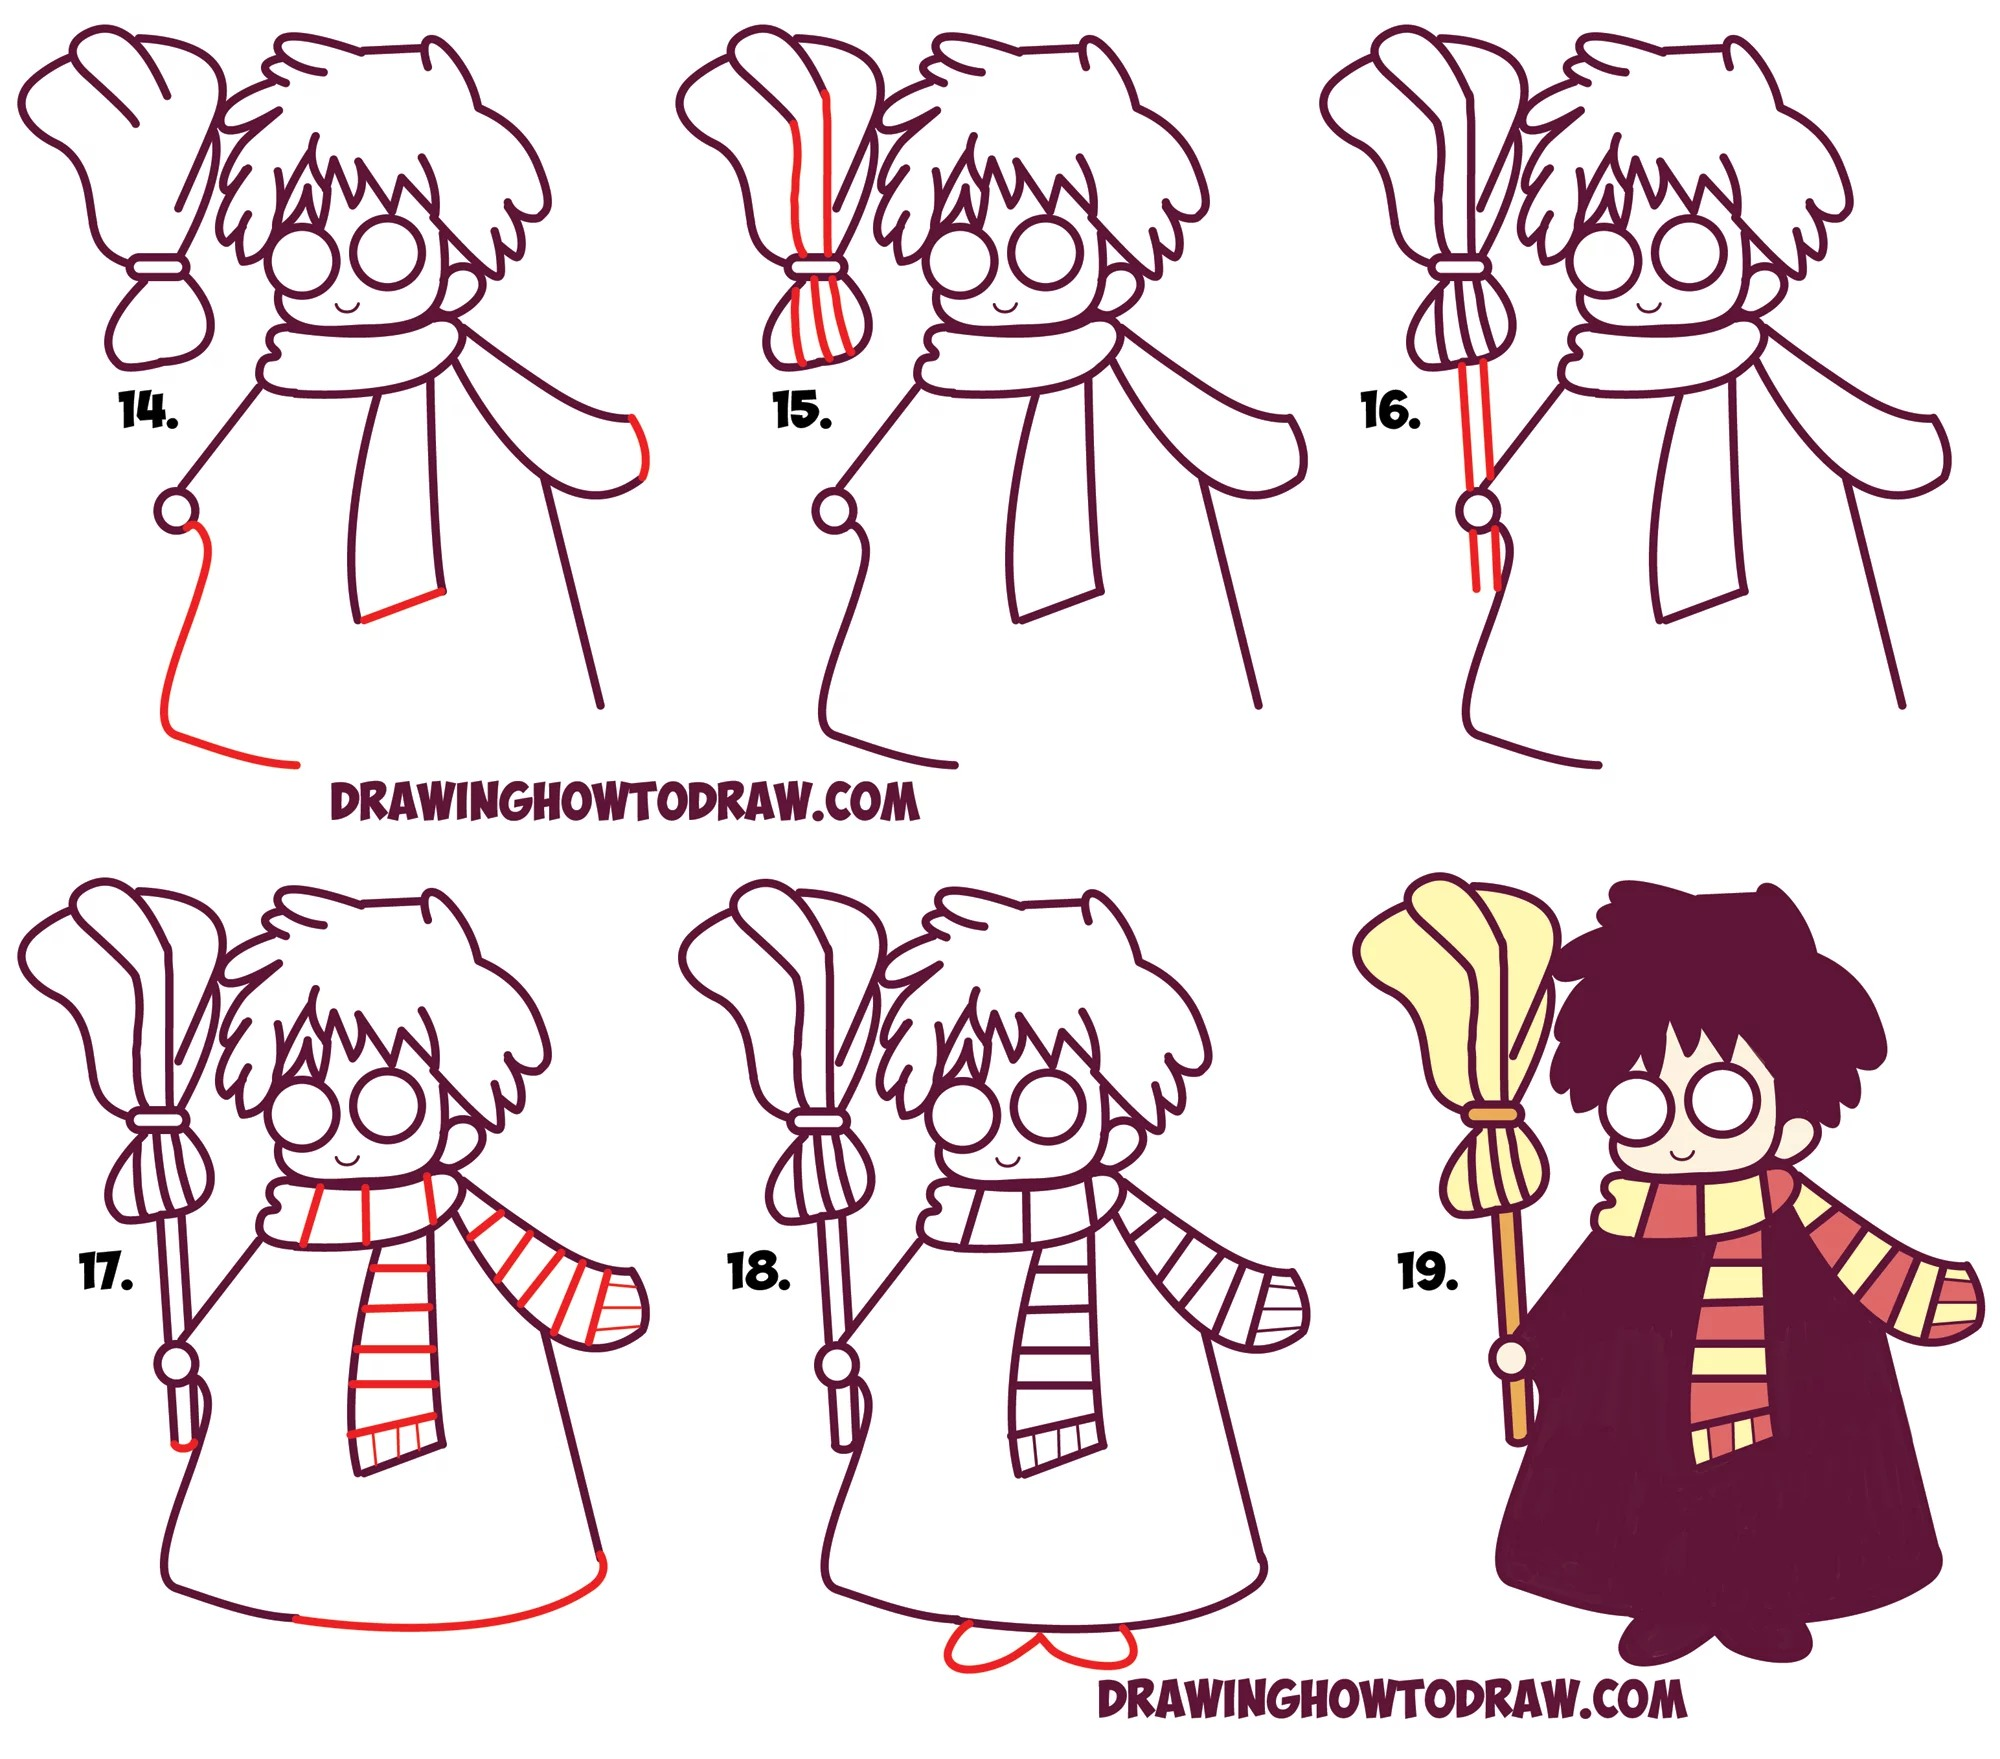 How To Draw Harry Potter Characters Drawing Ideas And